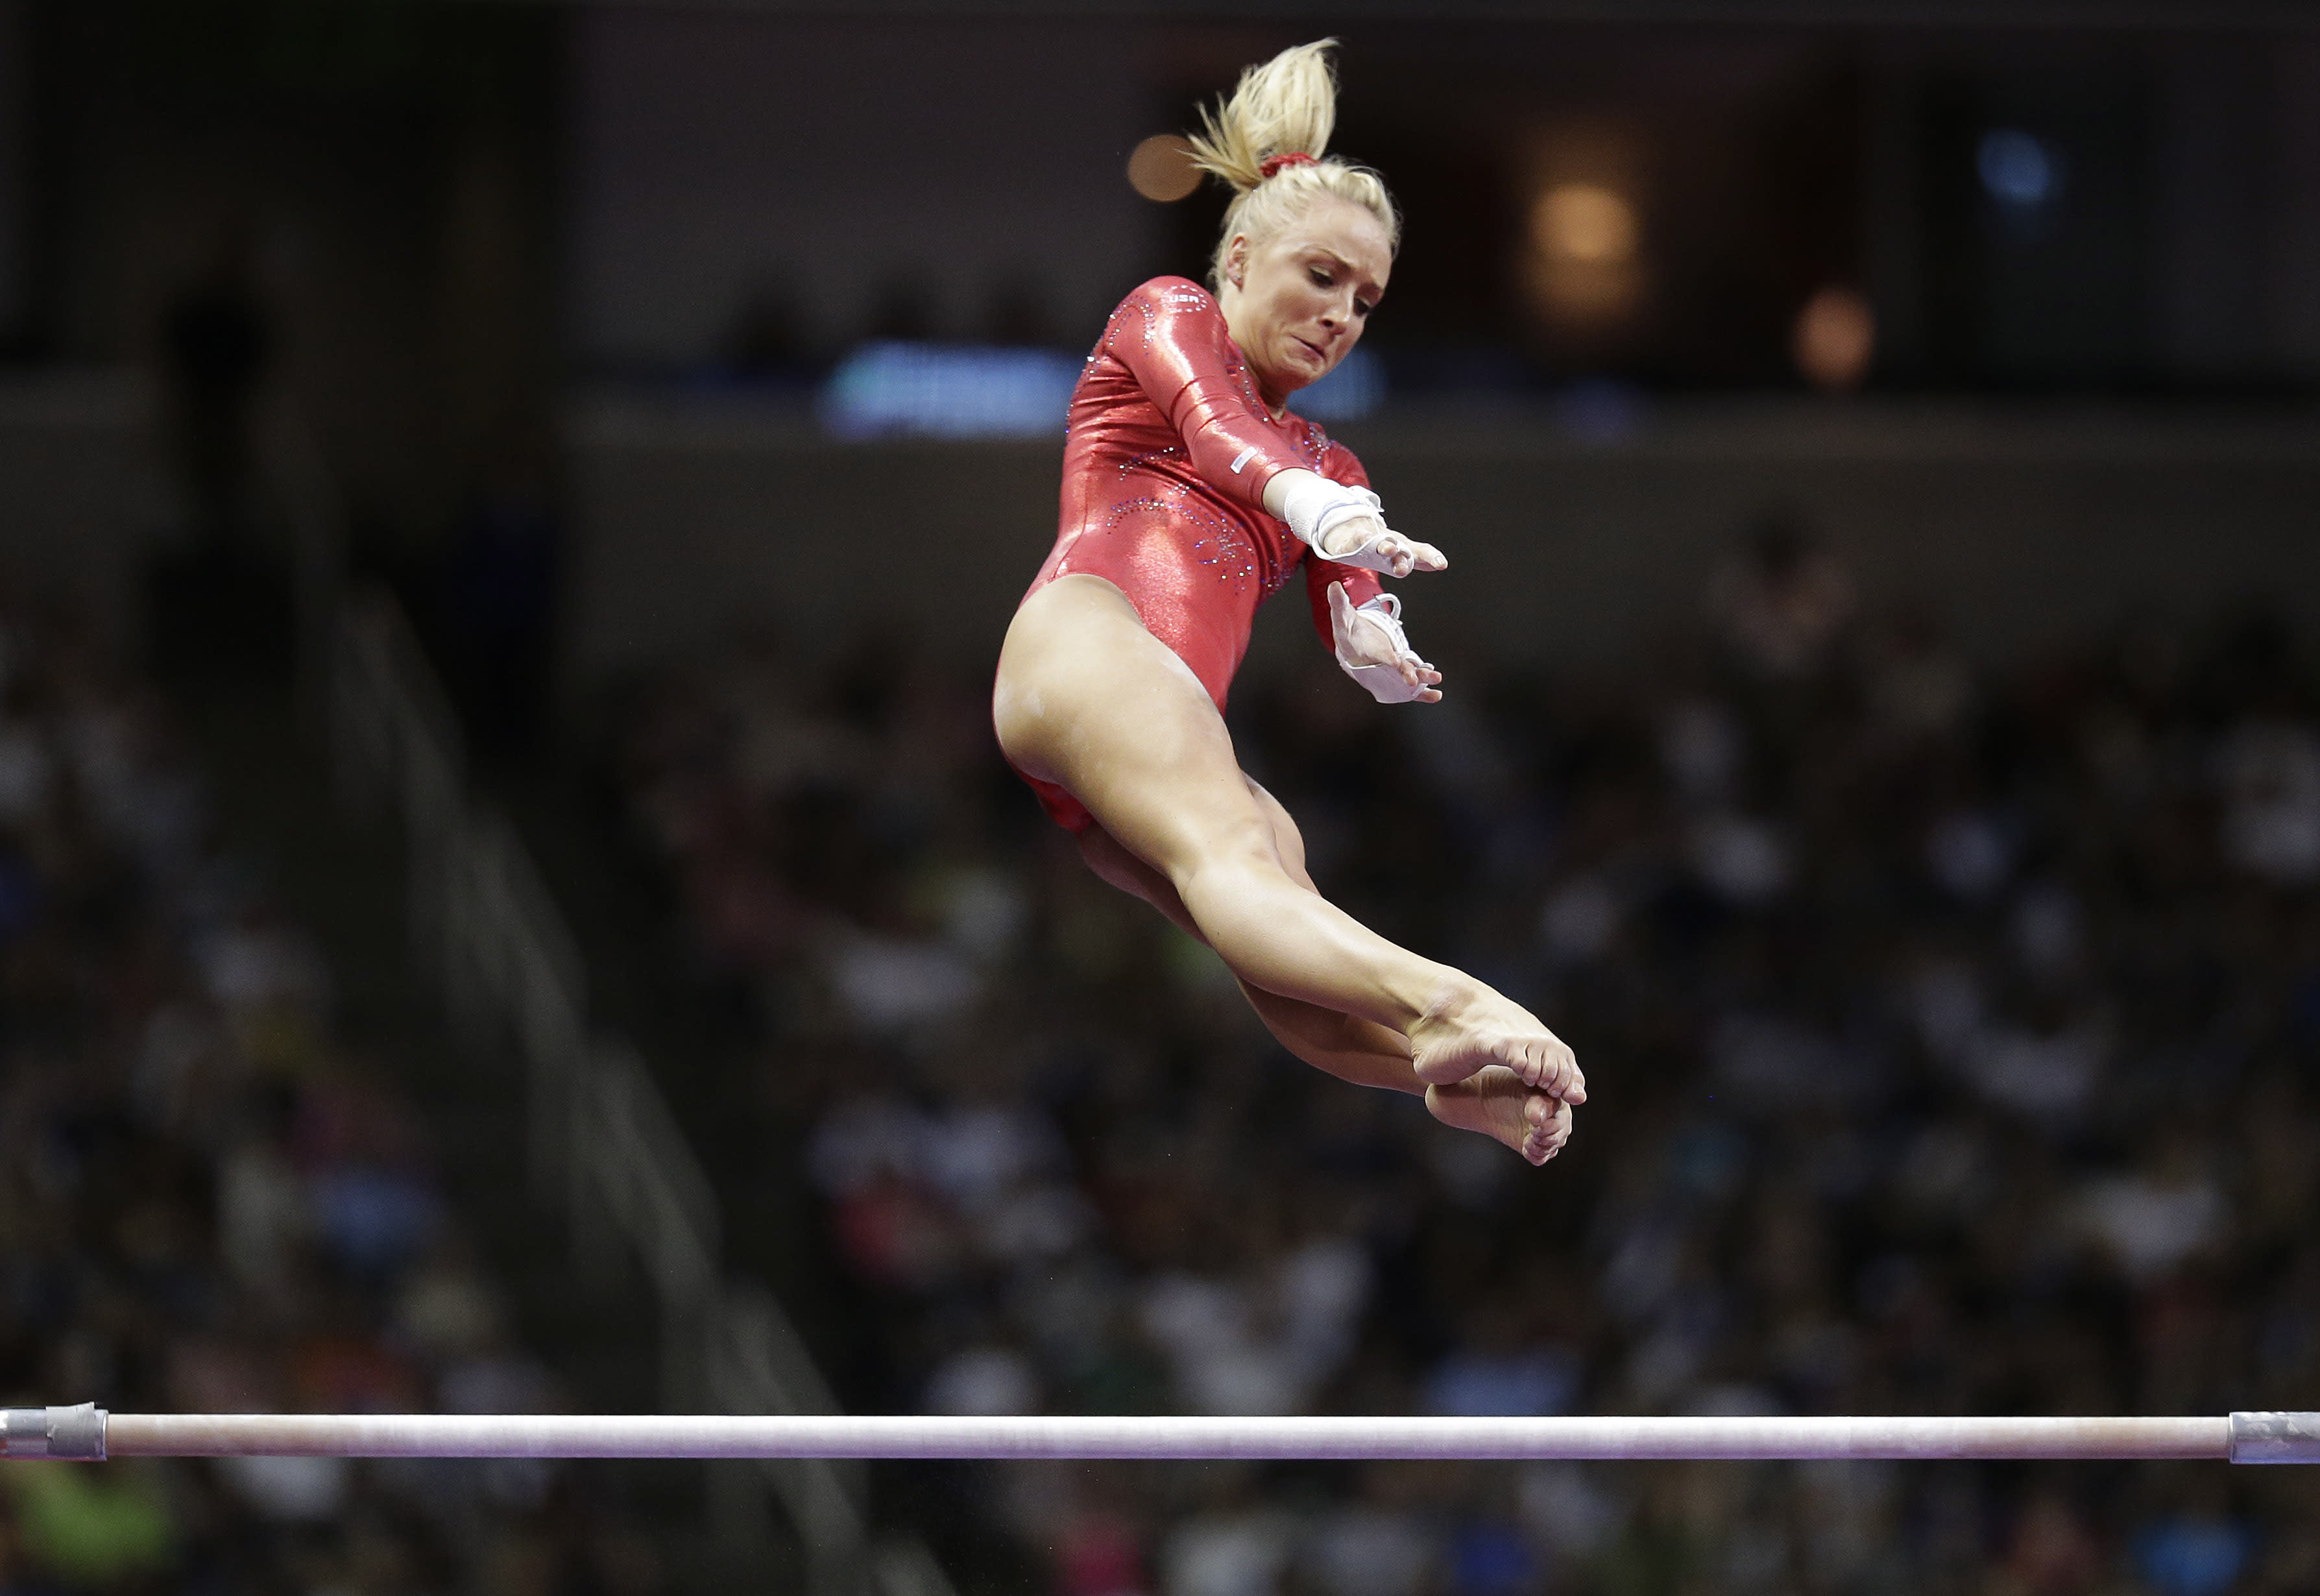 Nastia Liukin performs on the uneven bars during the final round of the women's Olympic gymnastics trials, Sunday, July 1, 2012, in San Jose, Calif. (AP Photo/Jae C. Hong)